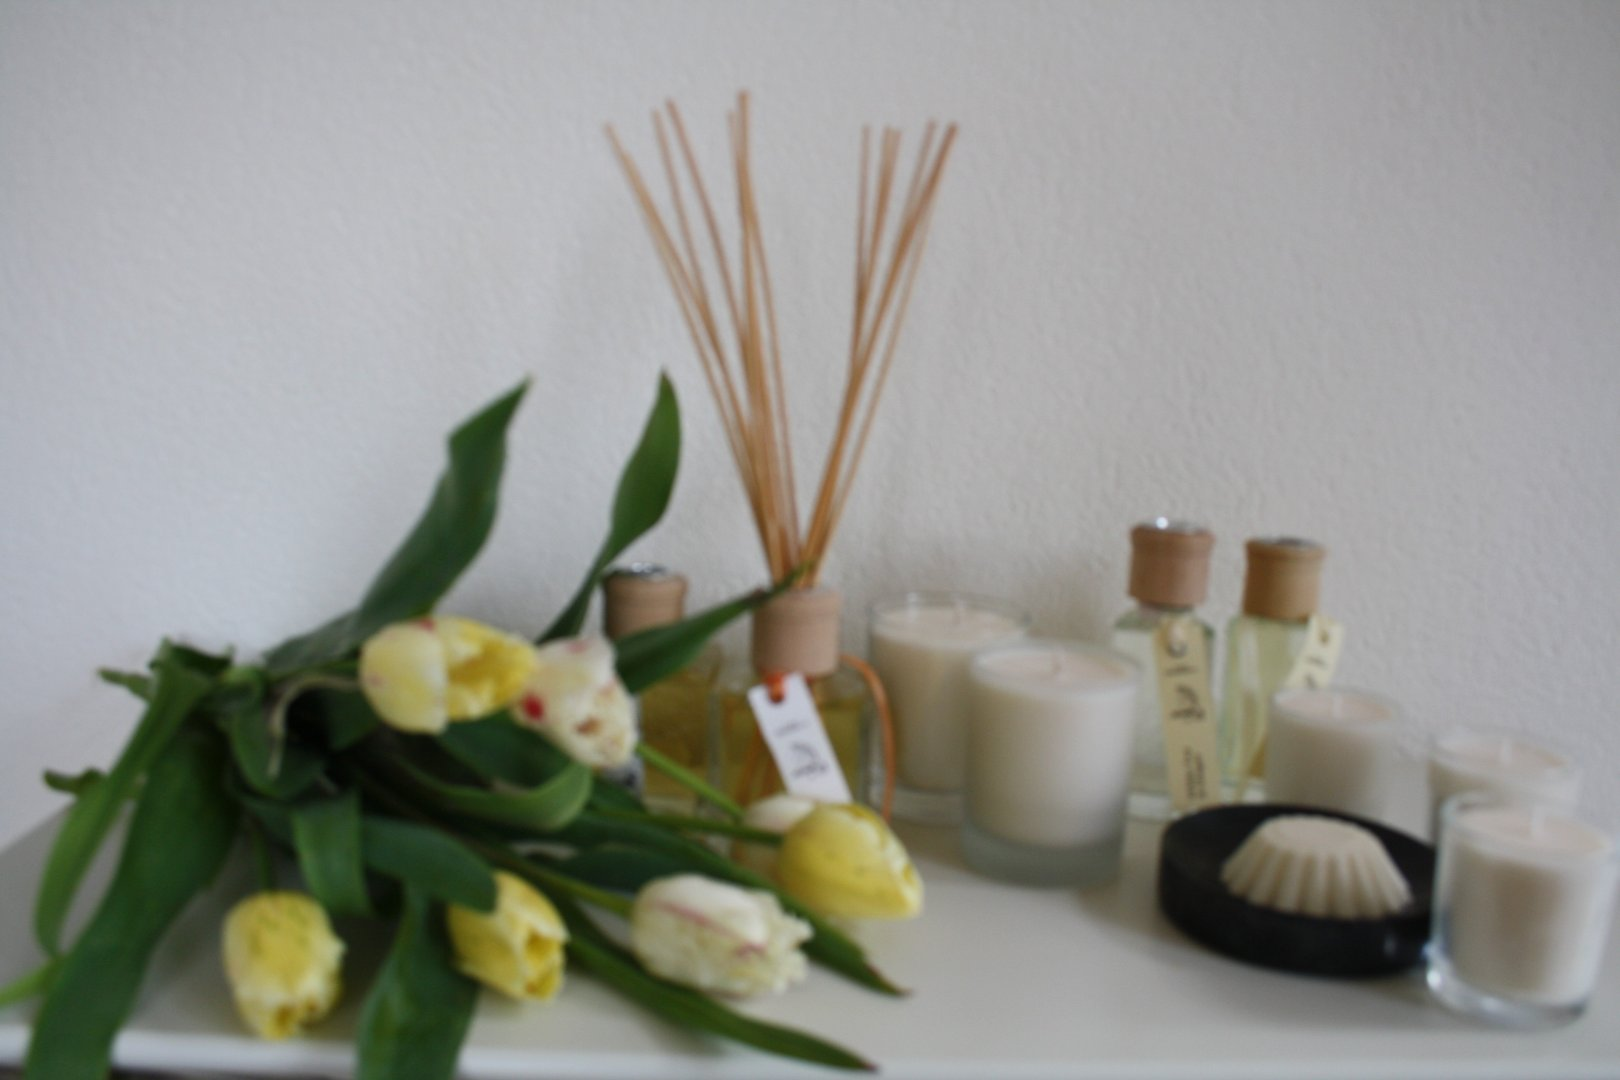 Late Bloomers wellness collection